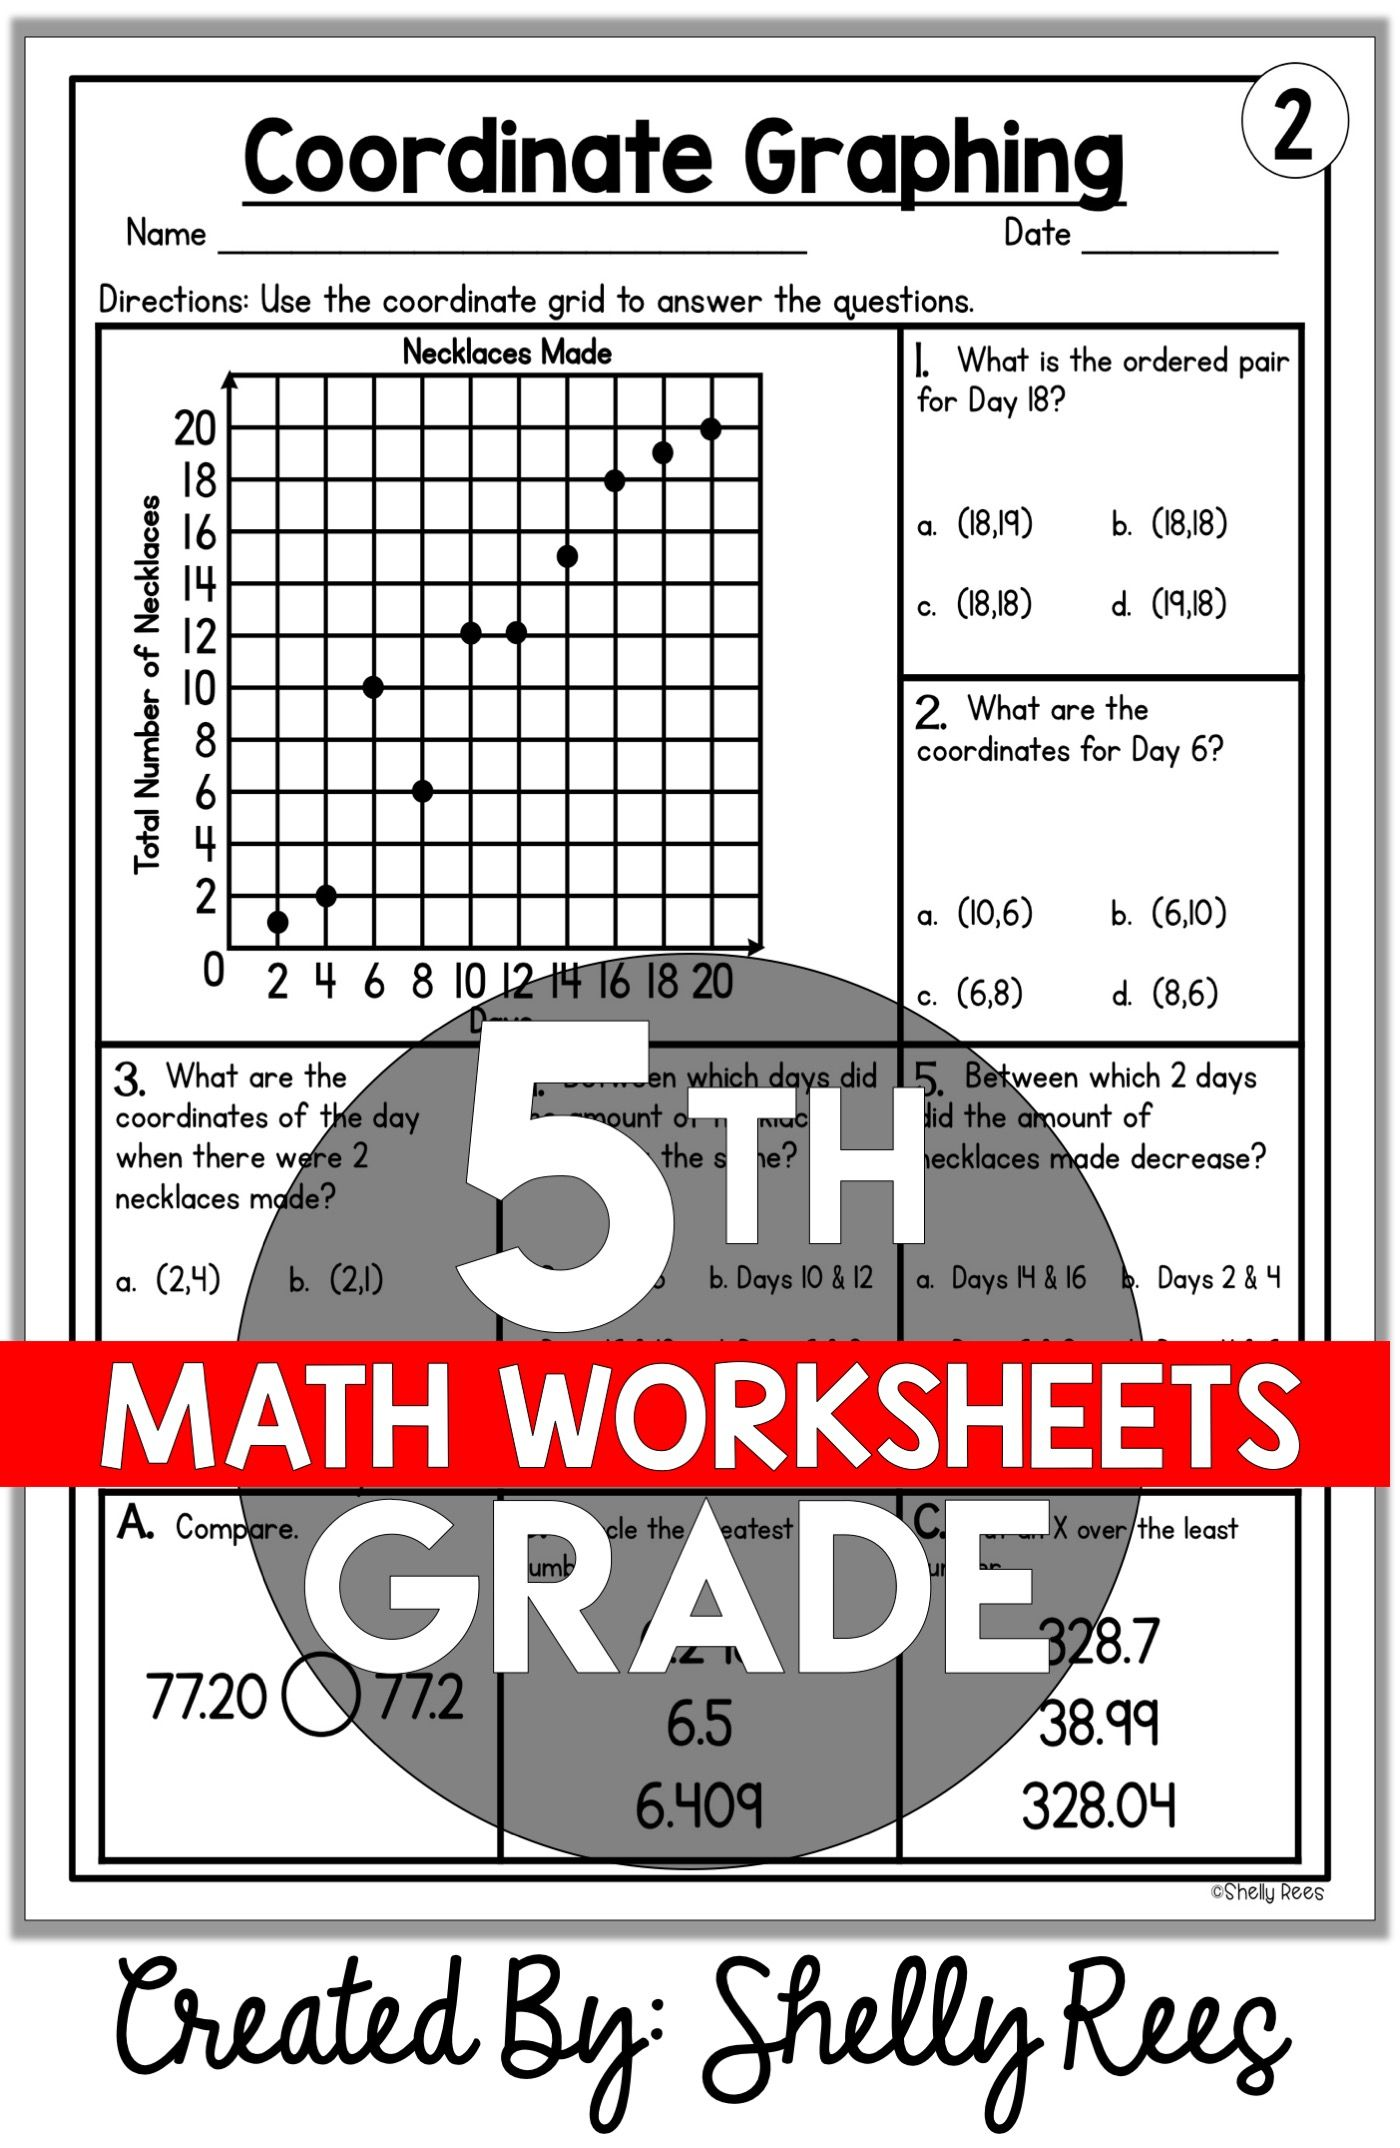 5th Grade Math Worksheets Free And Printable In